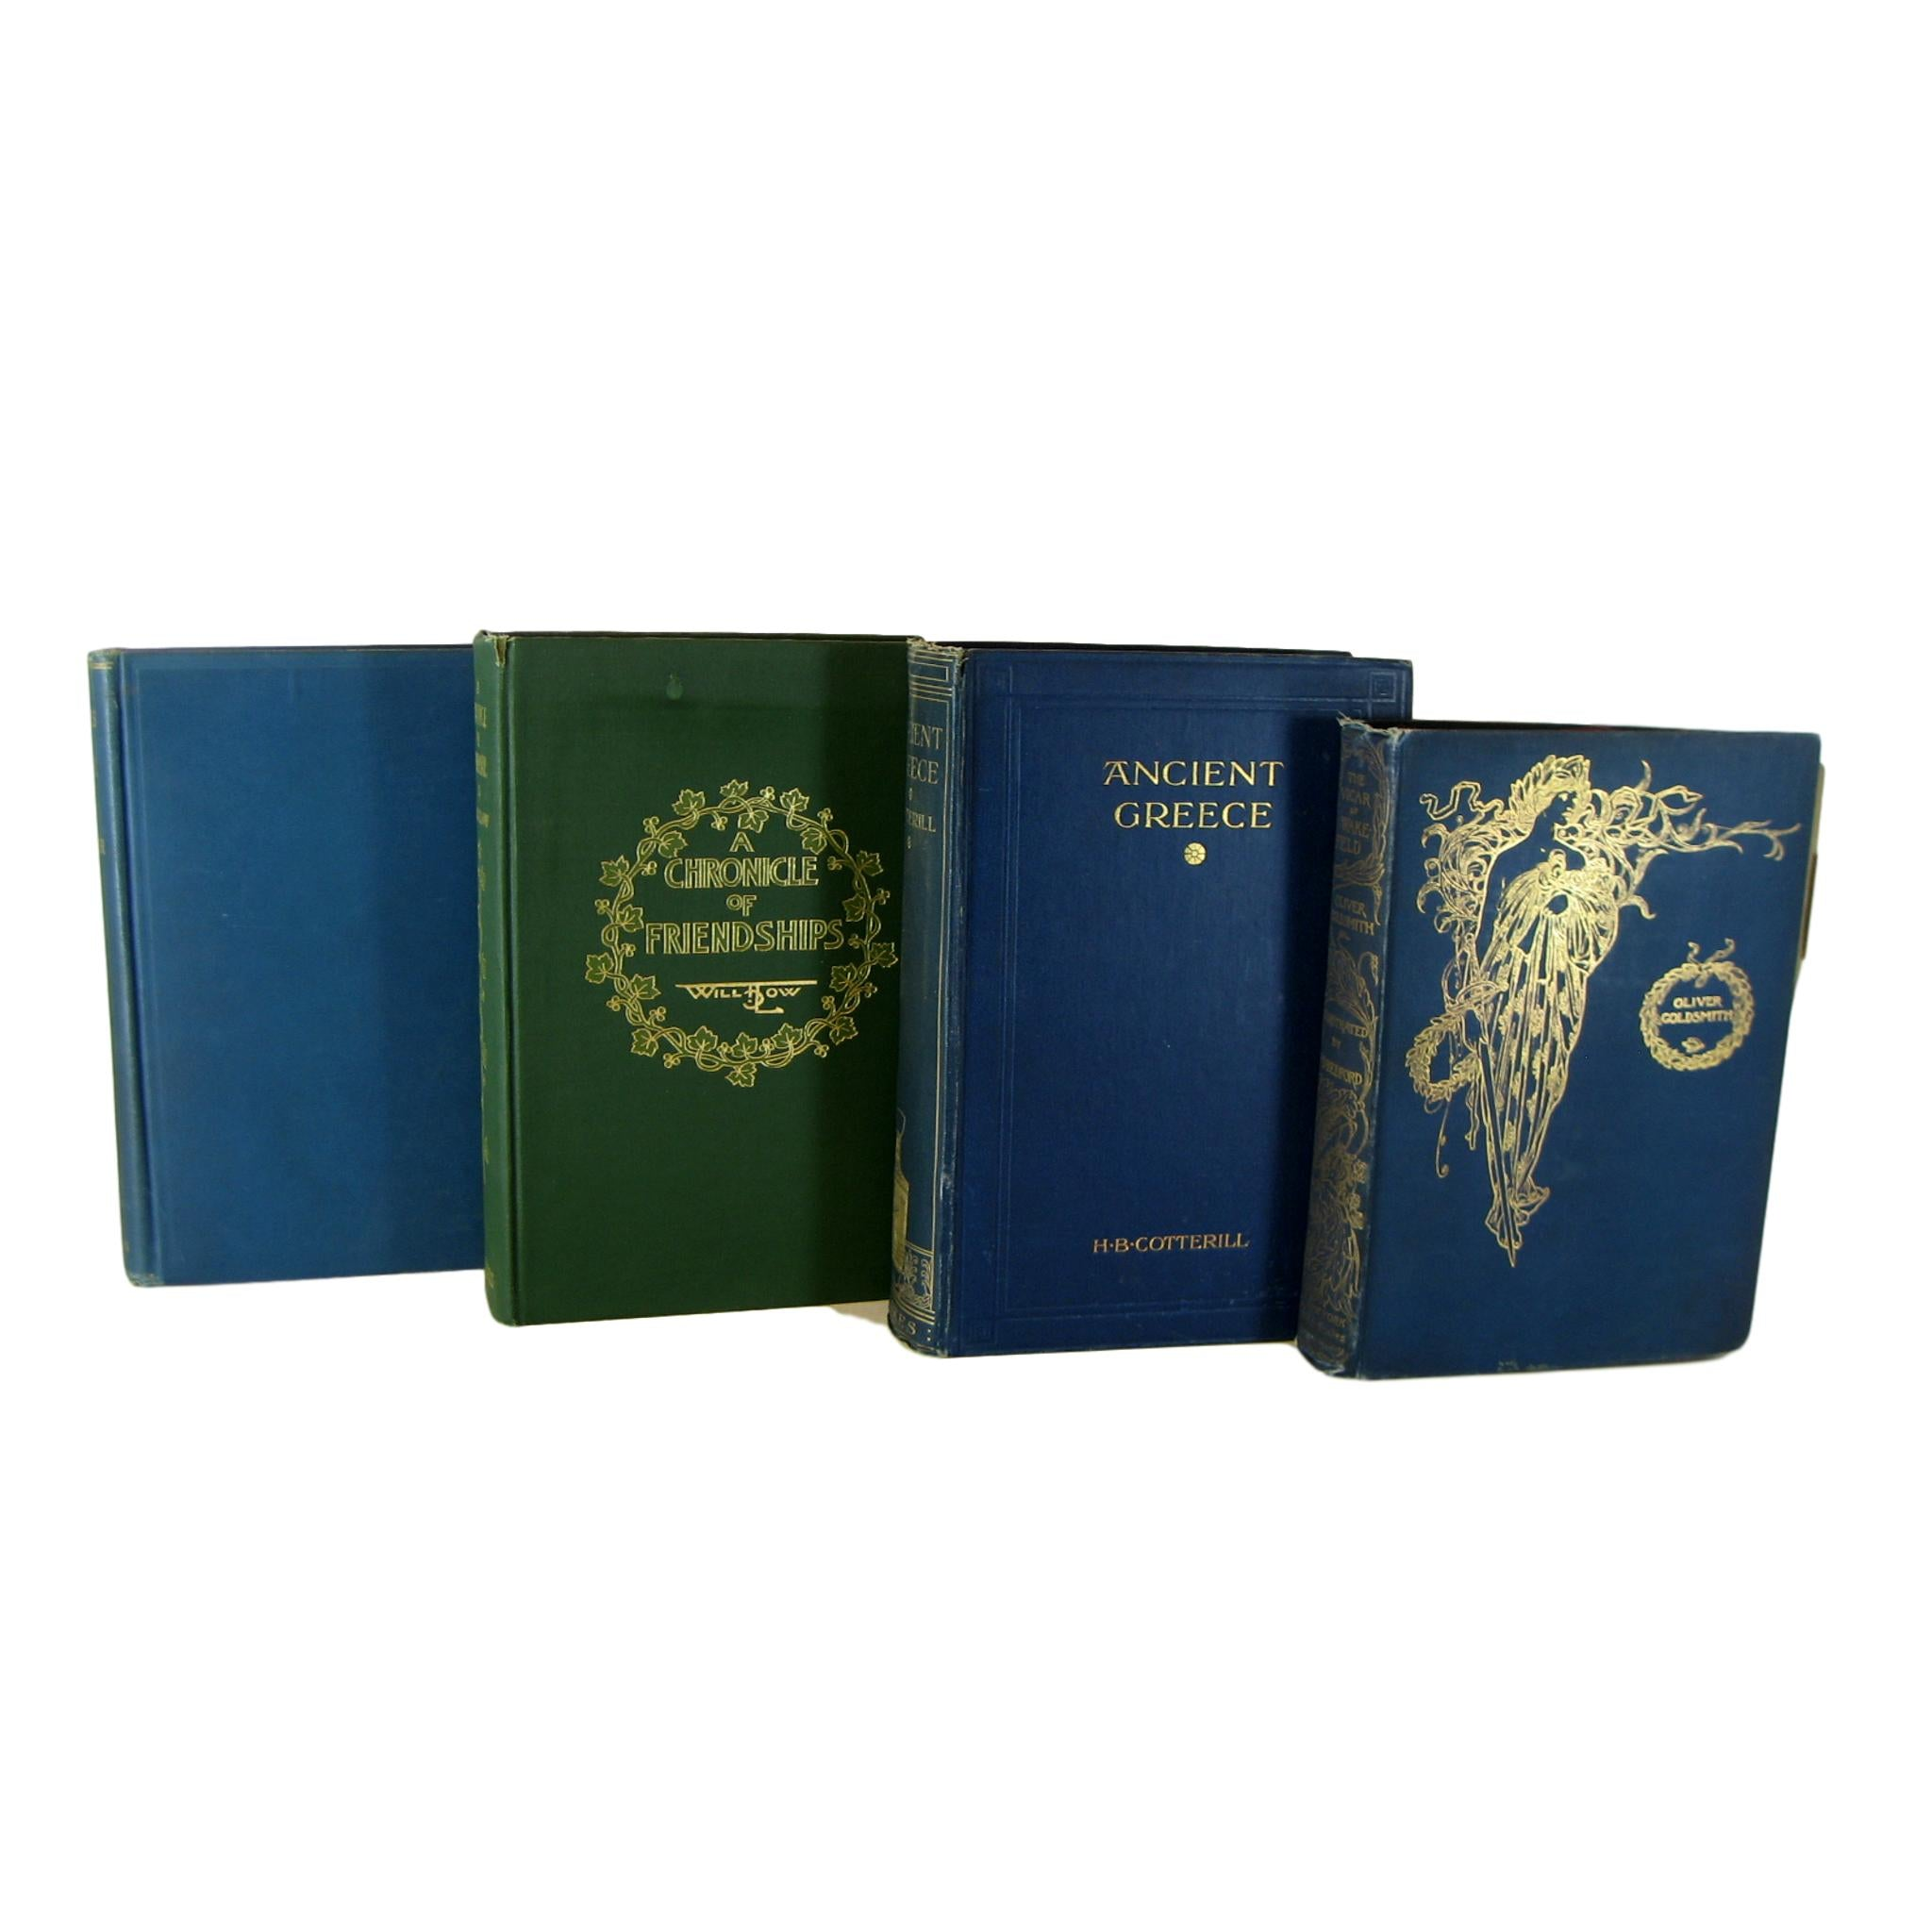 Decorative Books in Blue and Green for Rustic Decor, S/4